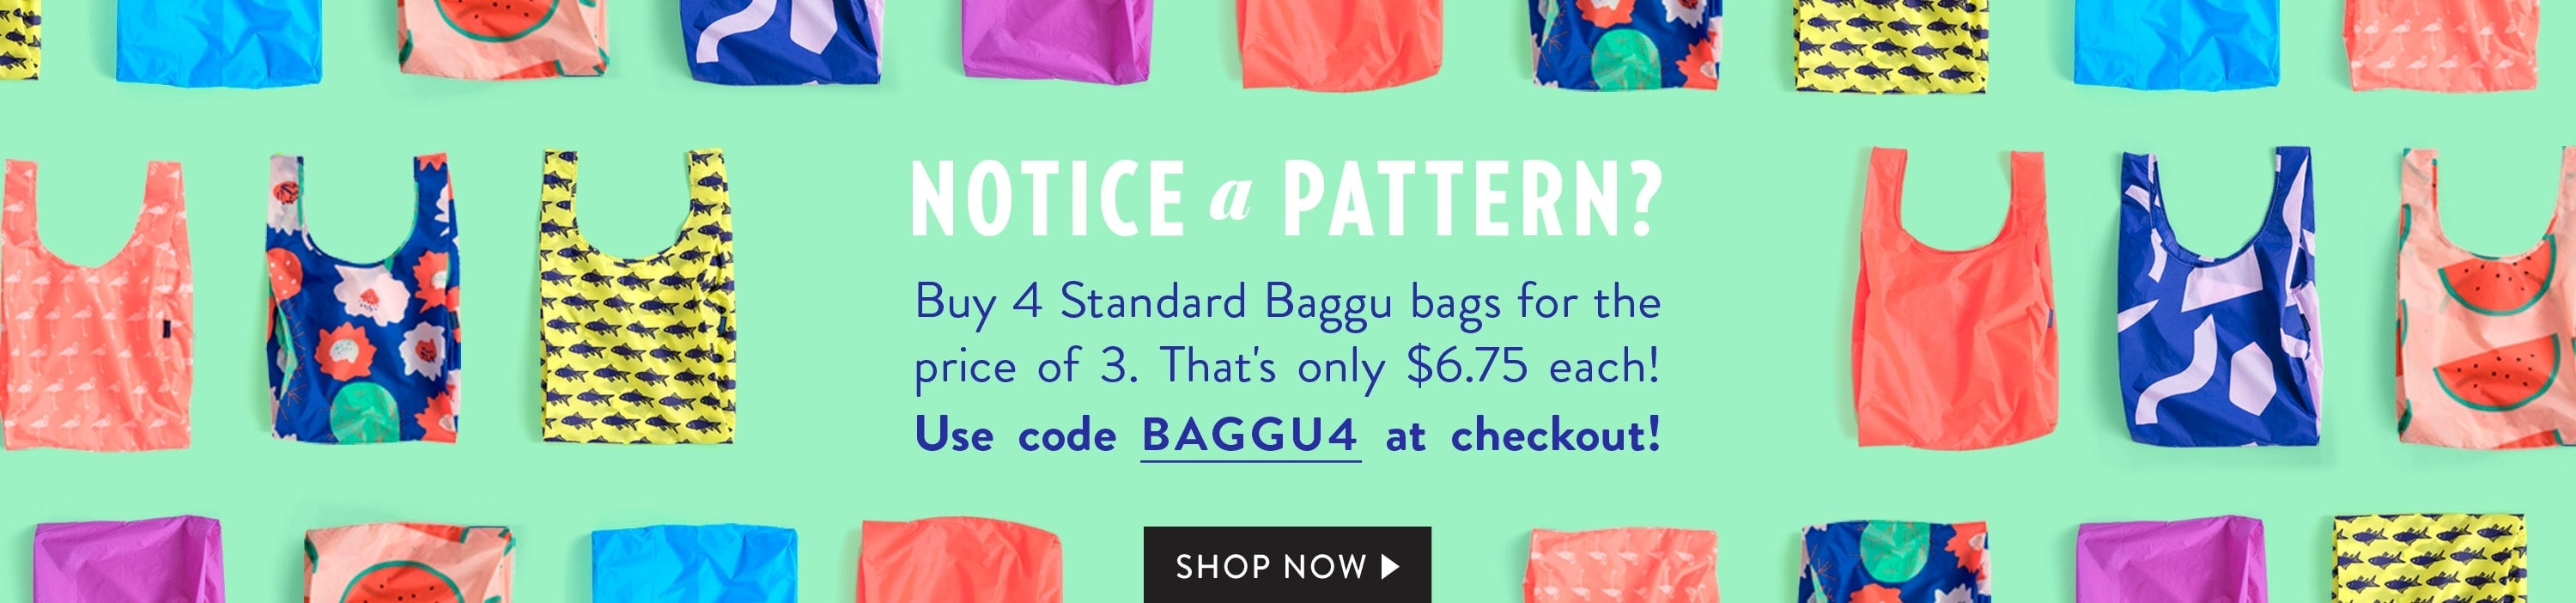 Baggu Bonanza! Buy 4 Standard Baggu Bags for the price of 3. Thats only $6.75 each! USE CODE ---BAGGU4--- at checkout! Shop Now]